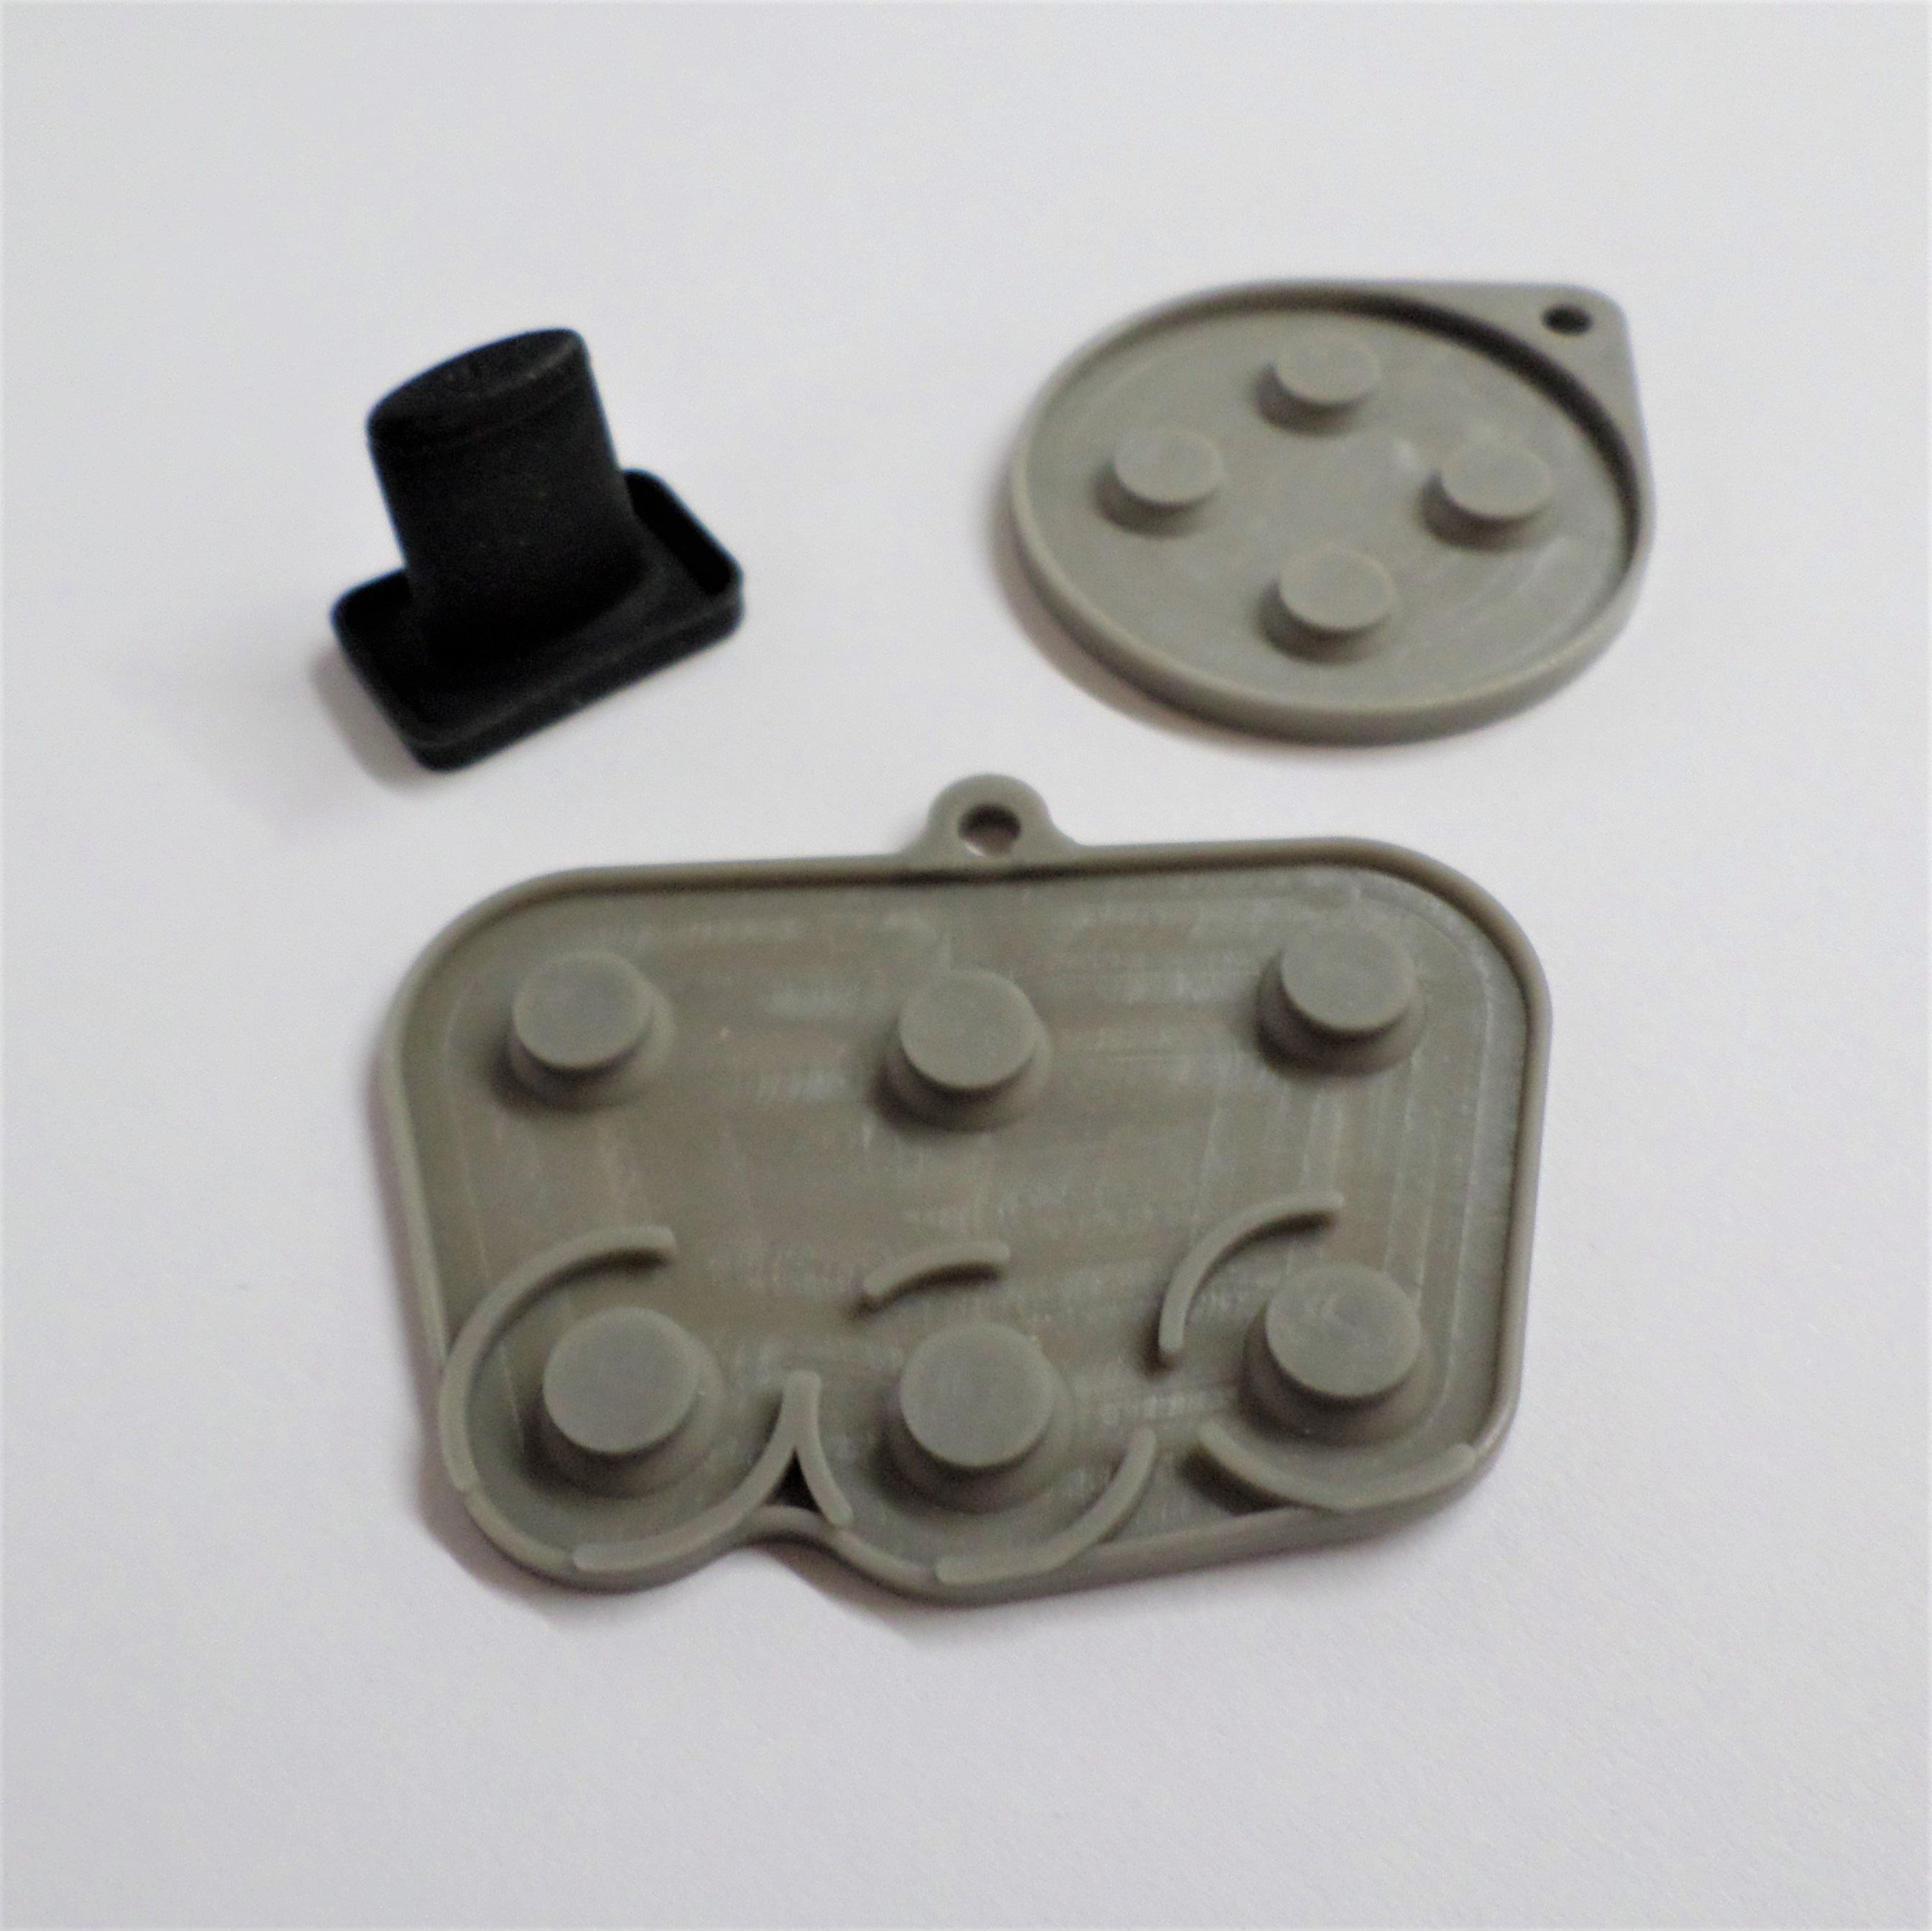 Conductive rubber pad button contacts kit for sega saturn controllers - grey & black | zedlabz